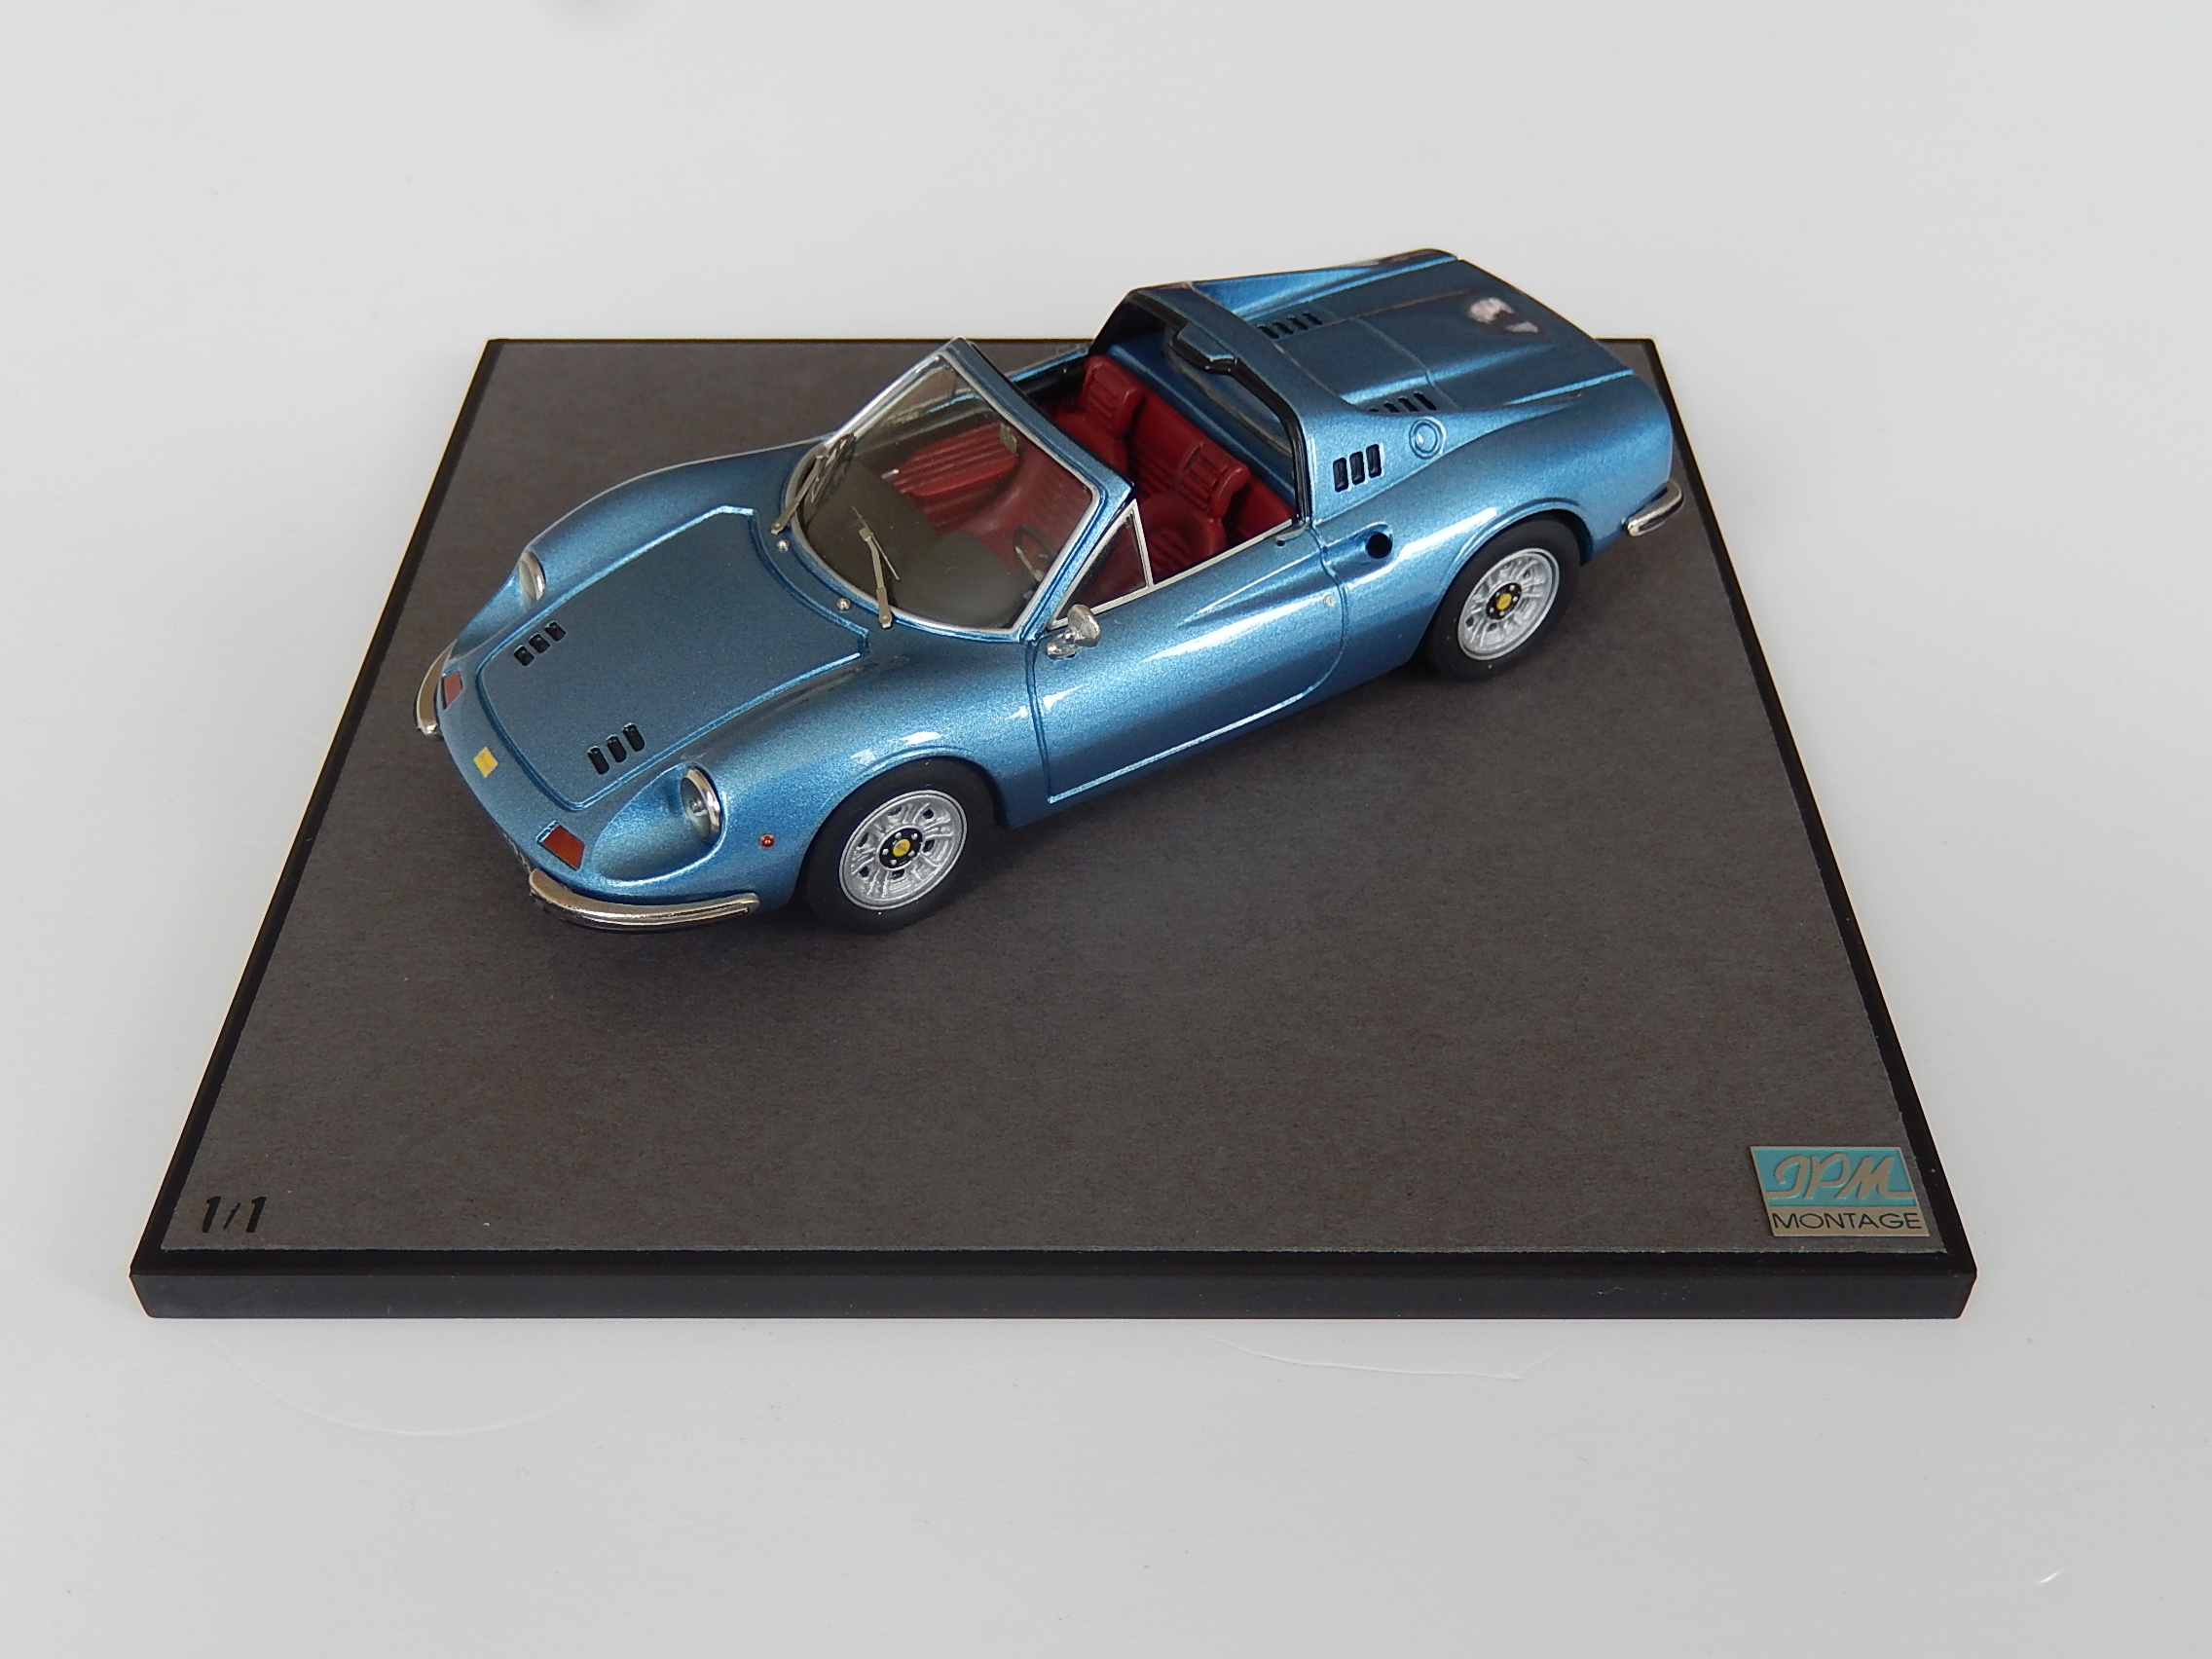 JPM : Ferrari Dino 246 GTS blue --> unique